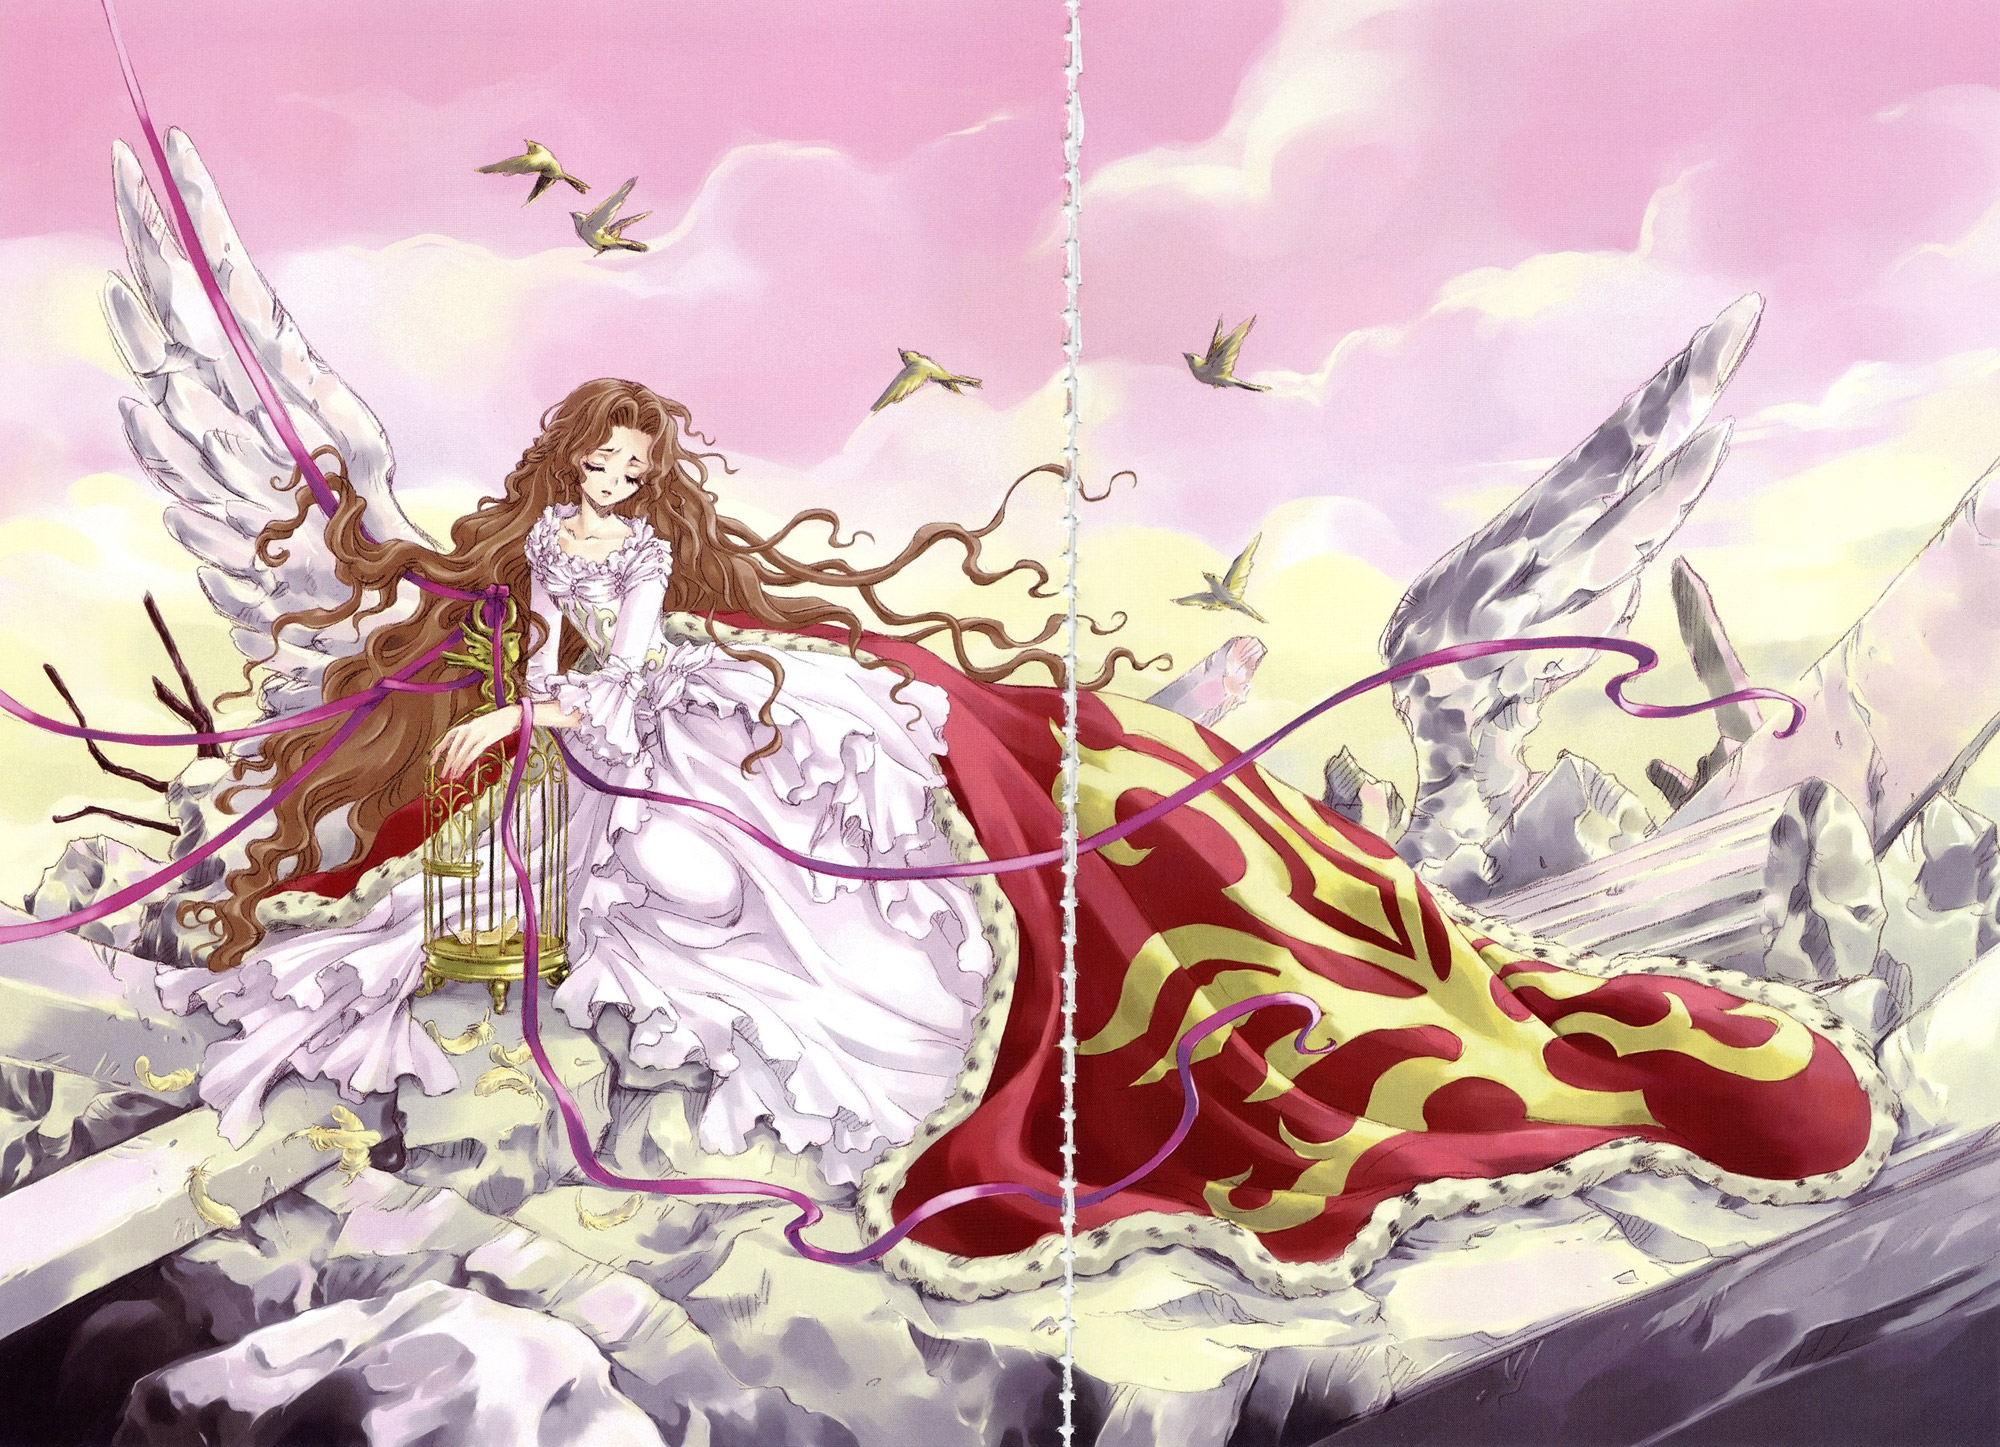 Mutuality: Clamp works in Code Geass image by Clamp